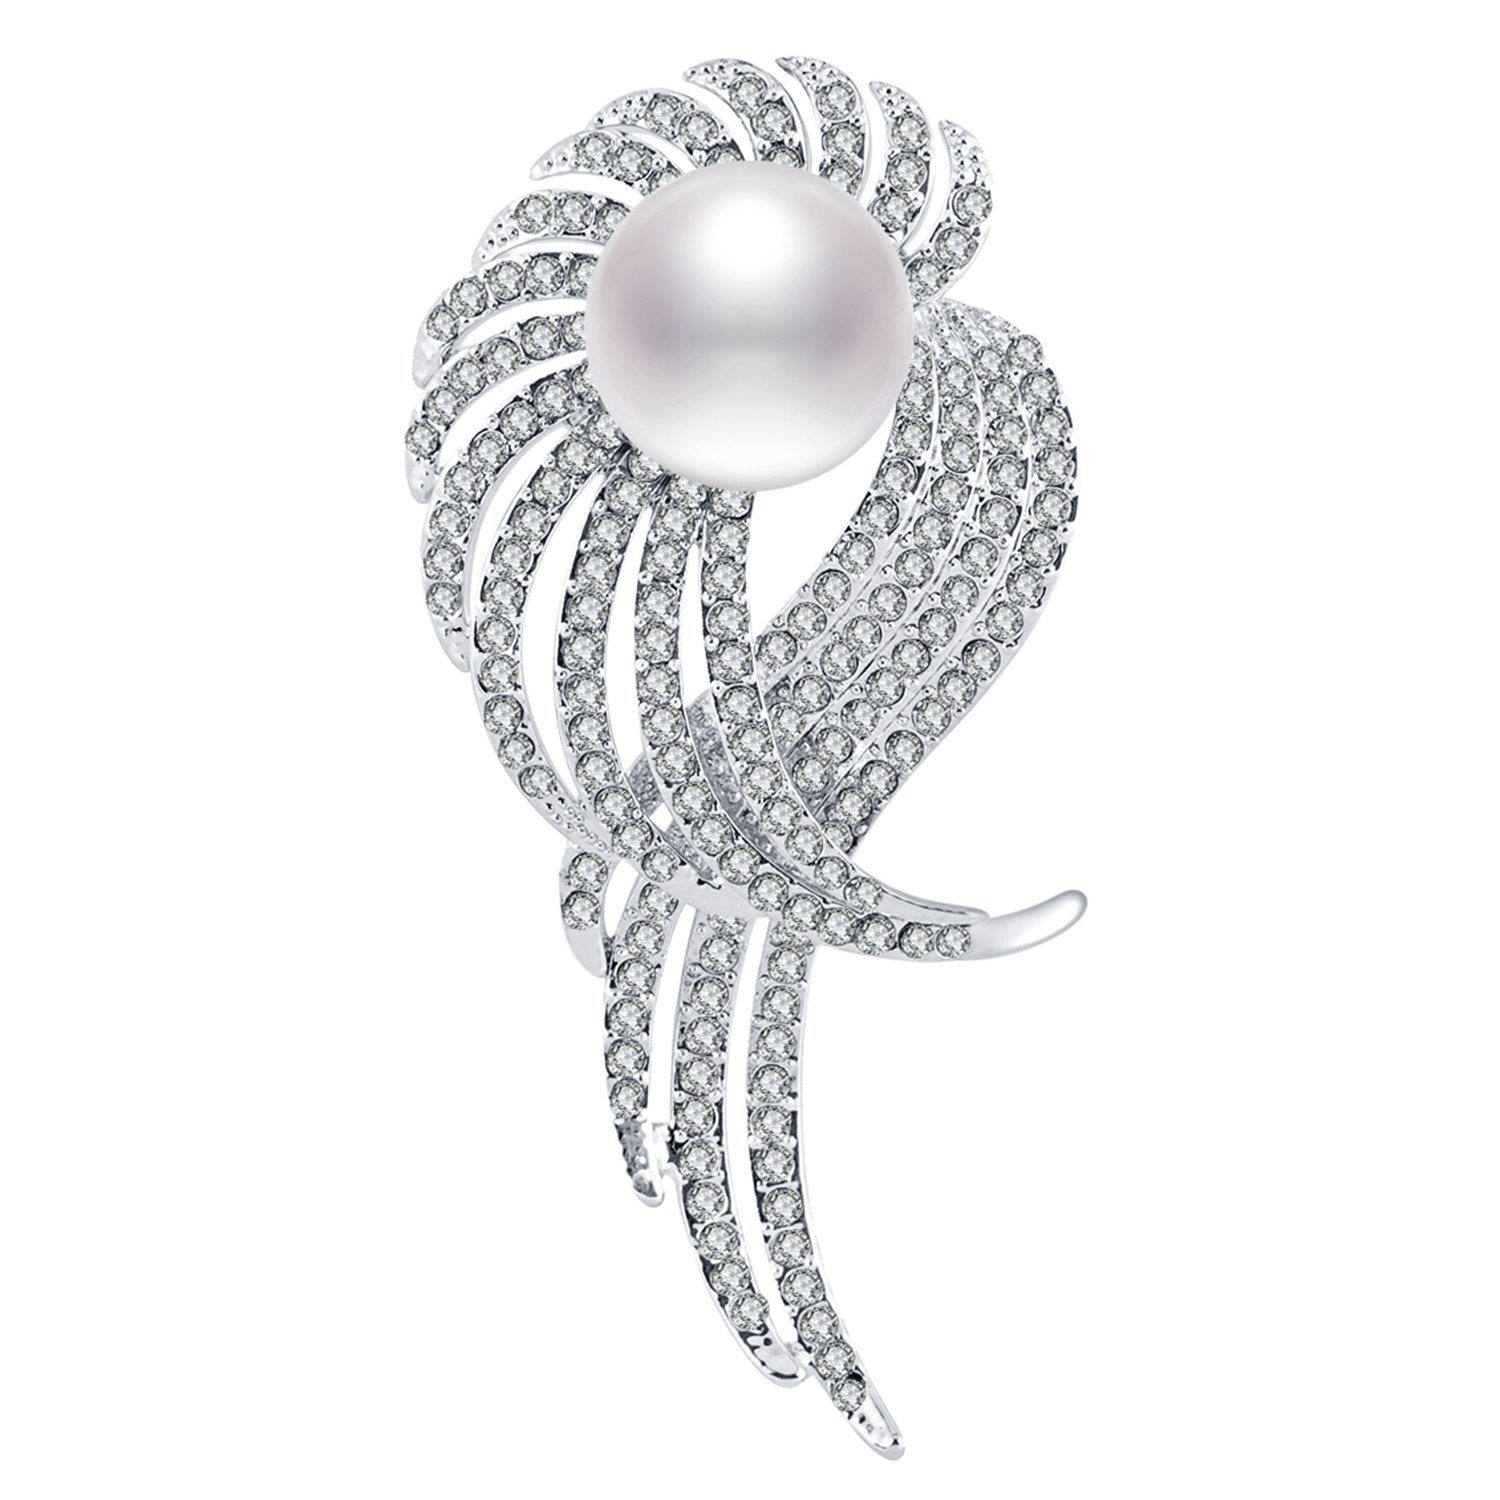 RAINBOW BOX Pearl Brooches for Women, Elegant Crystals from Swarovski Jewelry Brooch Pins for Women Girlfriend Her Valentine's Day Christmas'Day Birthday Gift